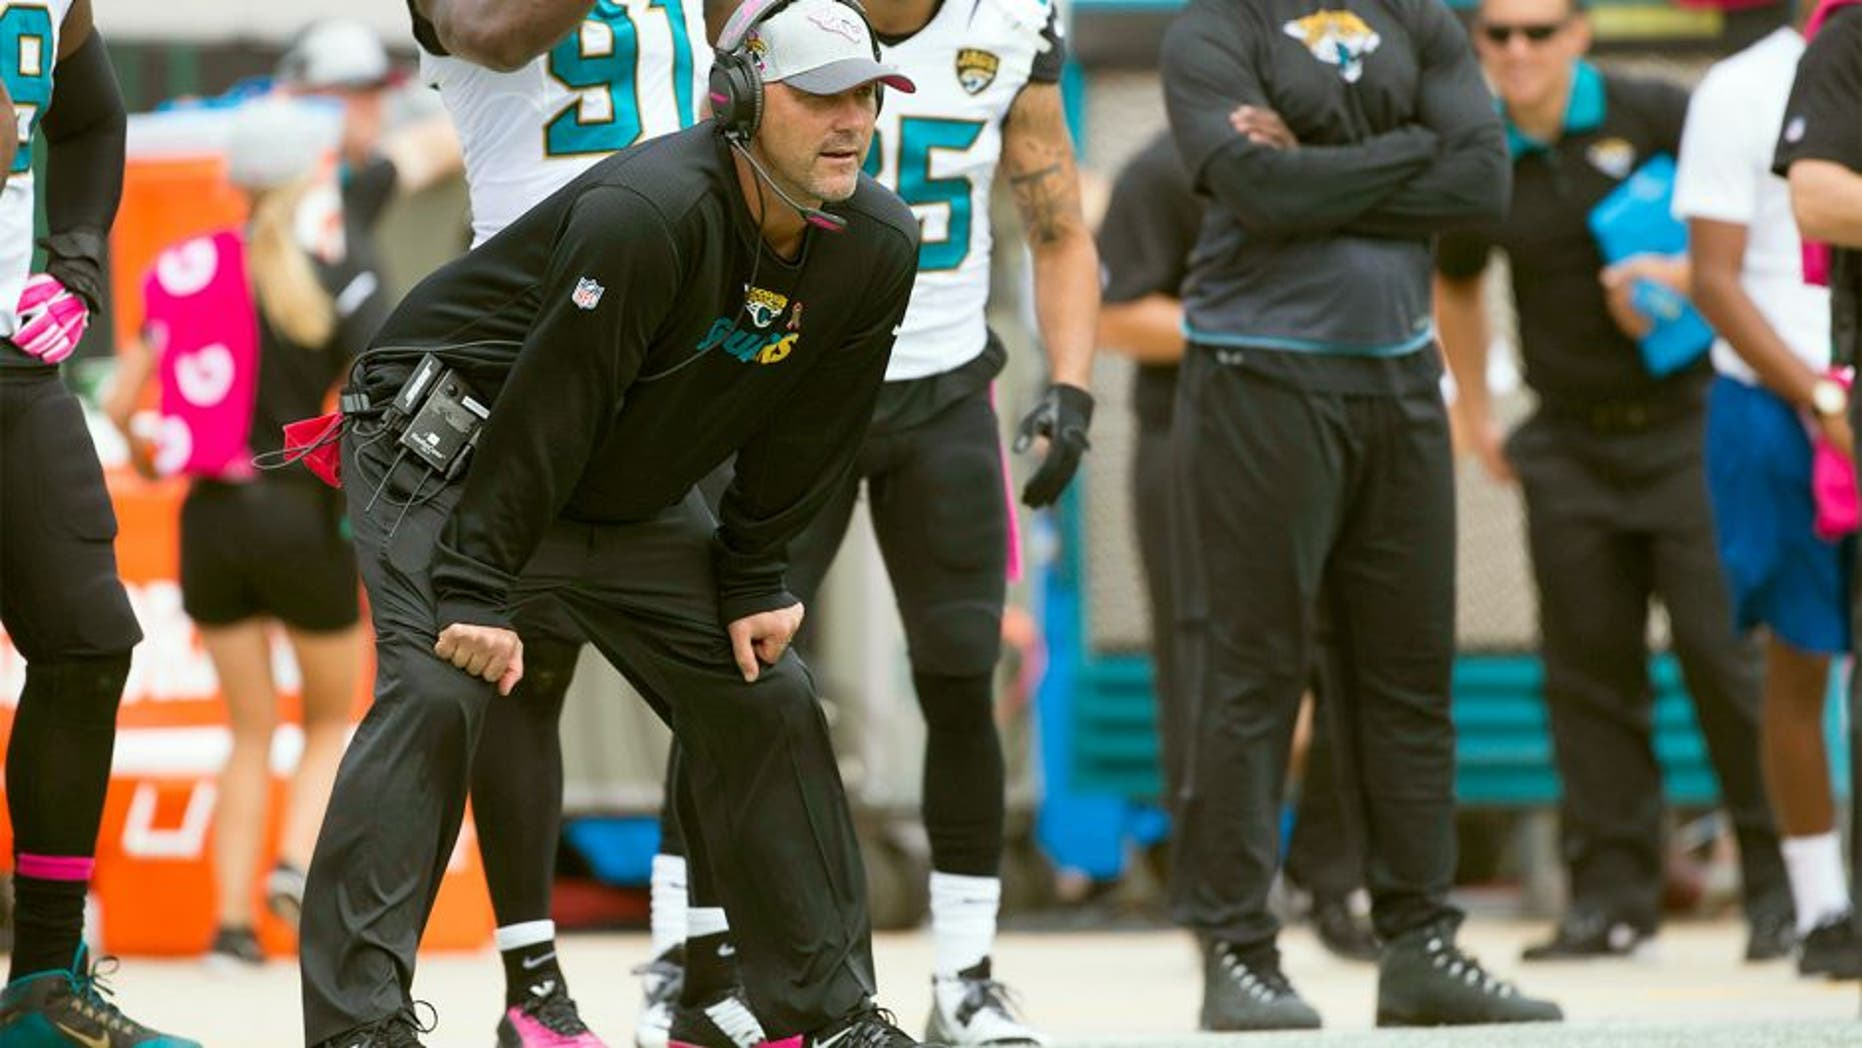 Oct 18, 2015; Jacksonville, FL, USA; Jacksonville Jaguars head coach Gus Bradley during the second quarter against the Houston Texans at EverBank Field. Mandatory Credit: Logan Bowles-USA TODAY Sports